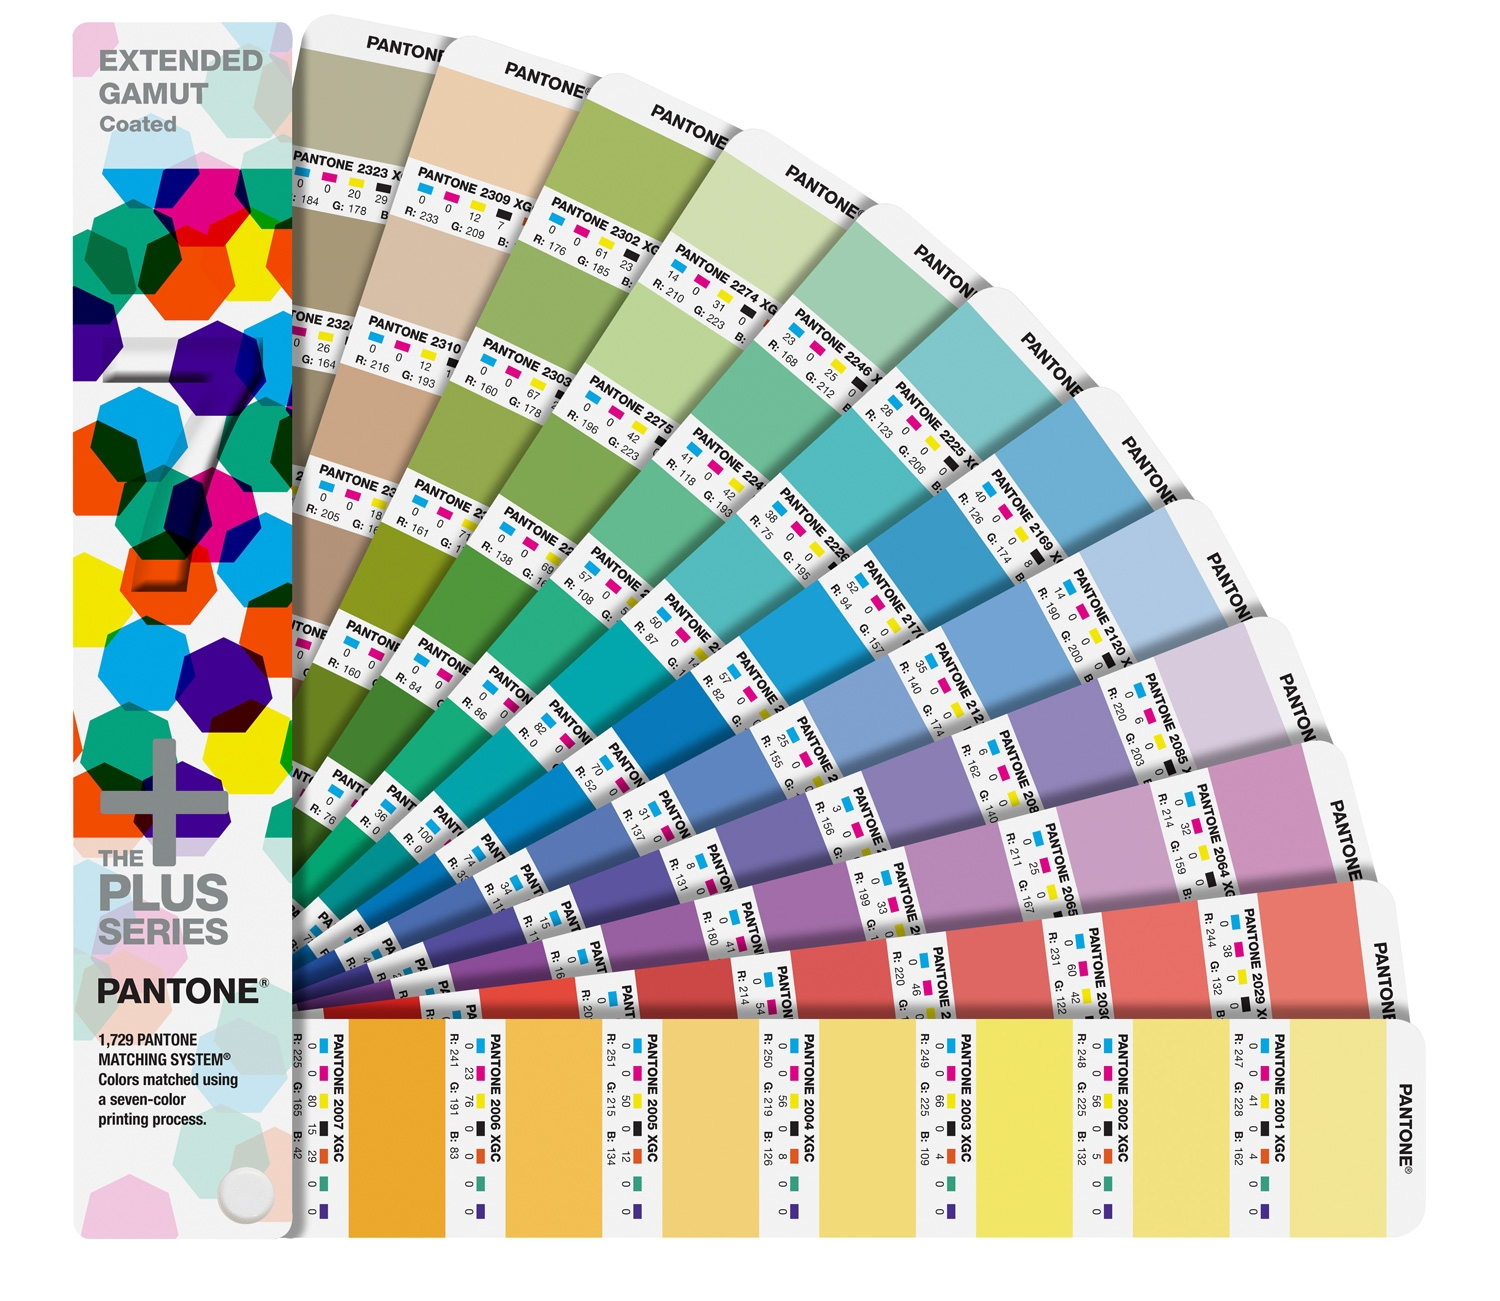 How To Print 90 Of Pantones Without Paying For Spot Colours